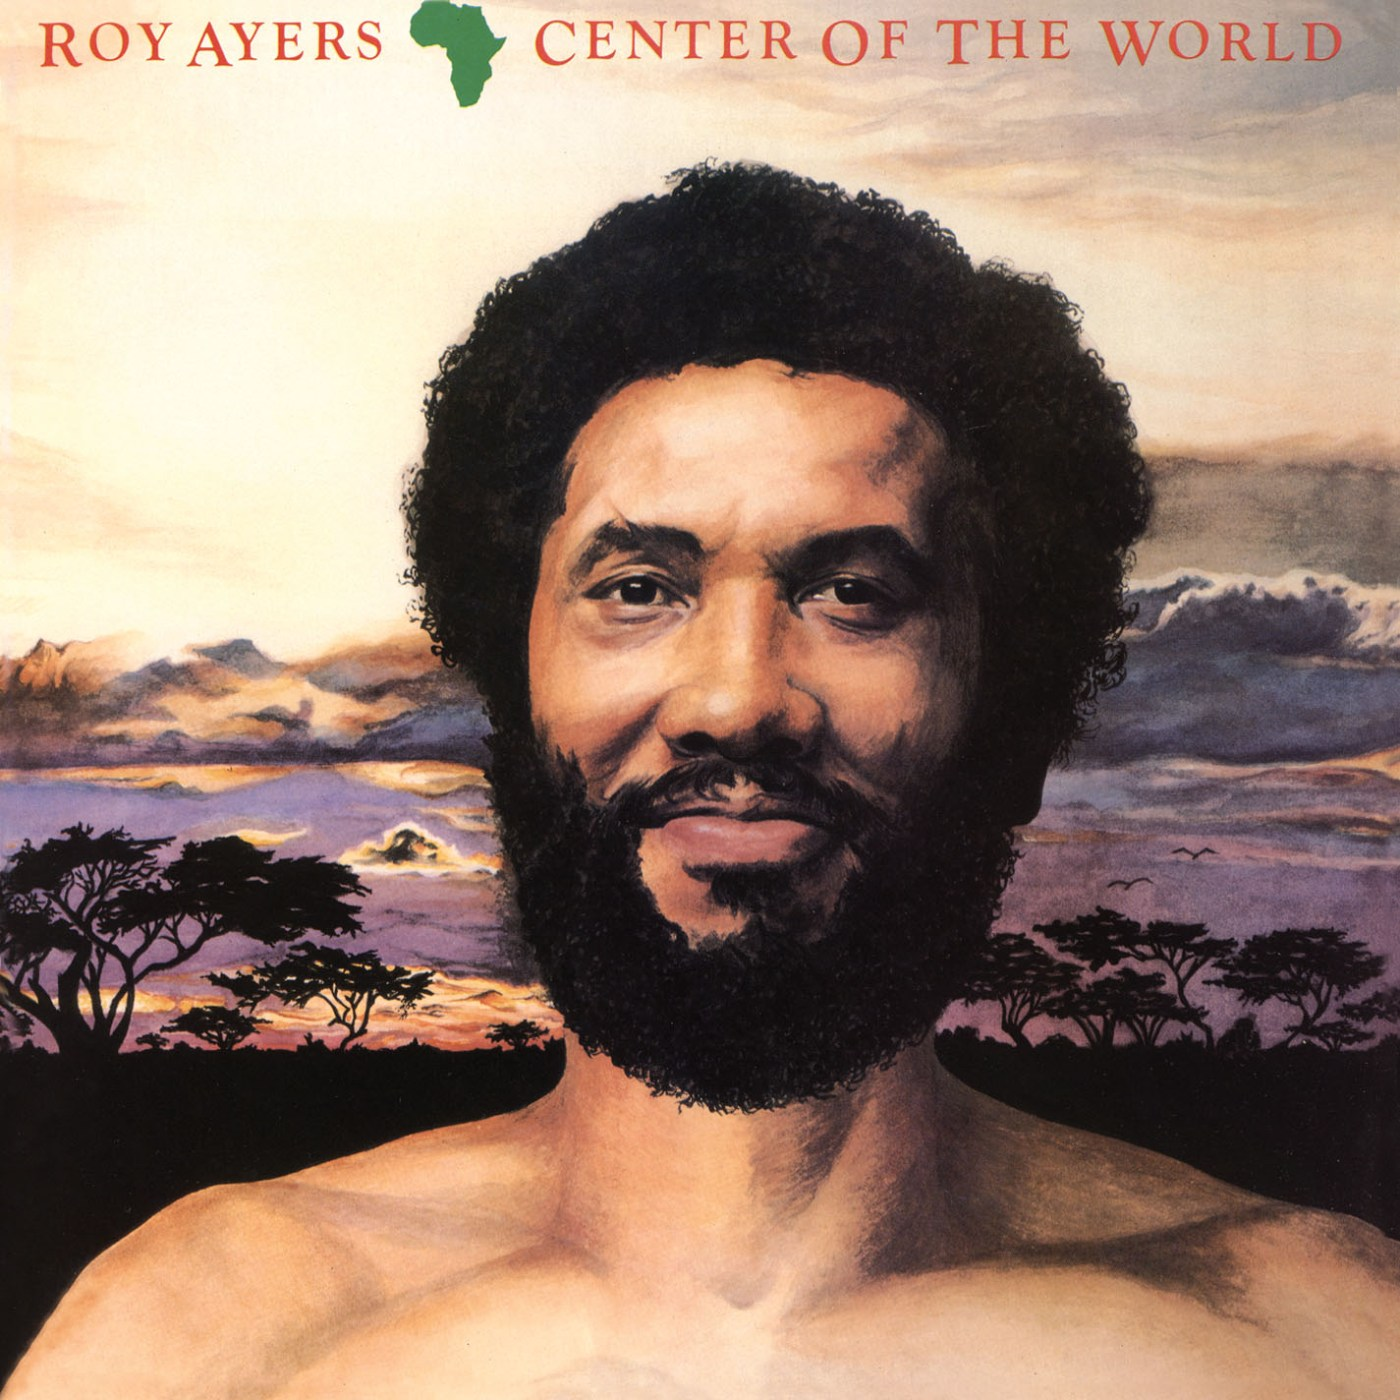 Roy Ayers/AFRICA, CENTER OF THE WORLD CD